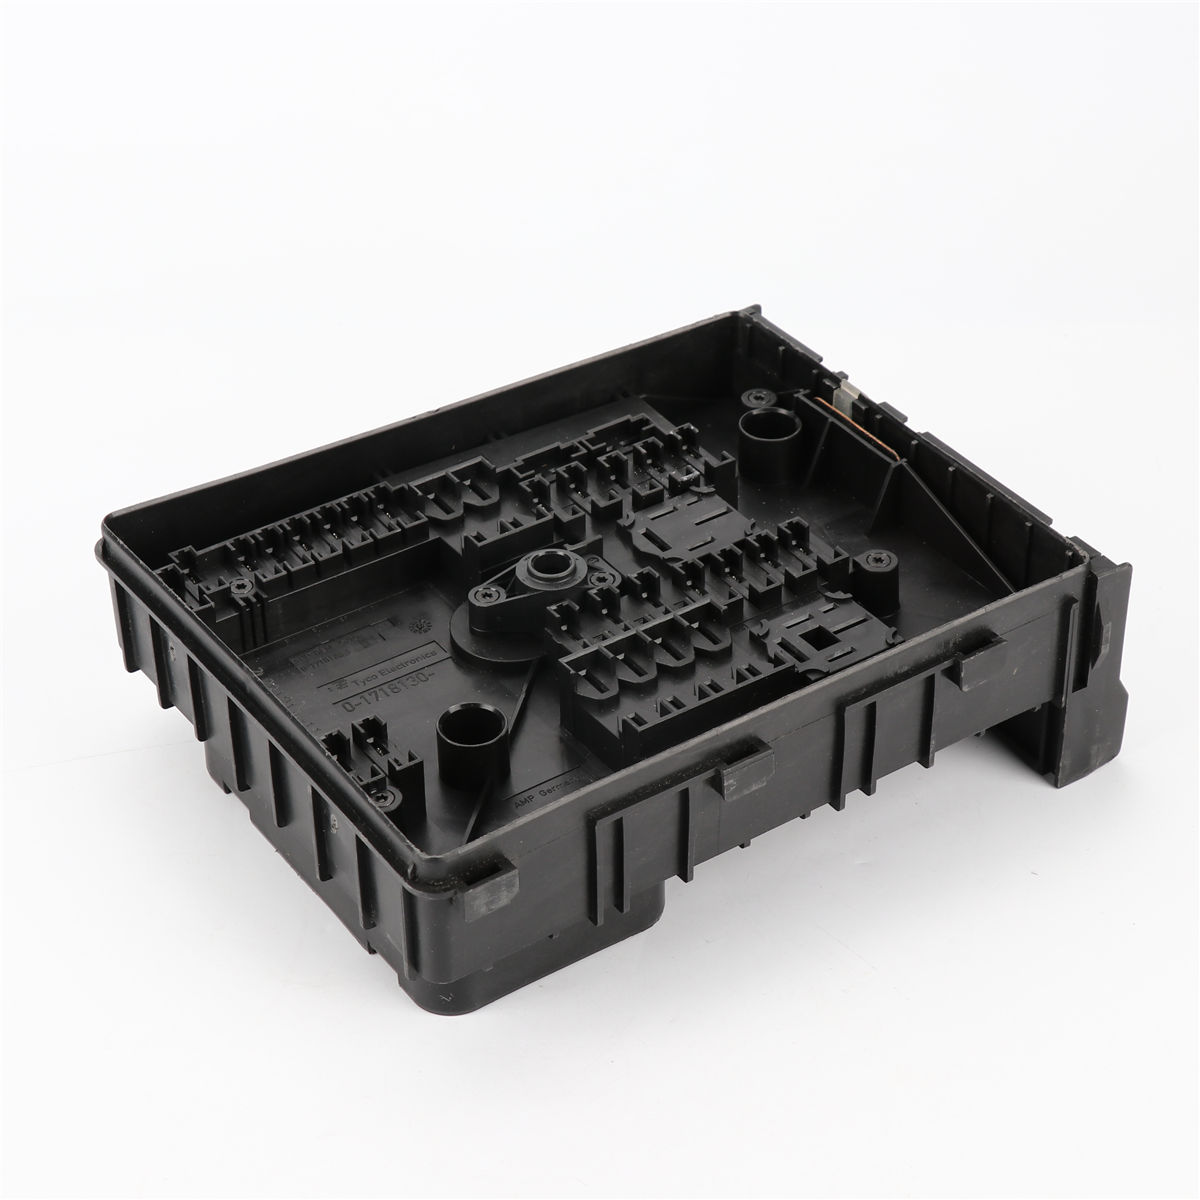 small resolution of 1pcs relay fuse box board for vw jetta golf mk5 eos rabbit audi a3 seat skoda 1k0 937 125 d